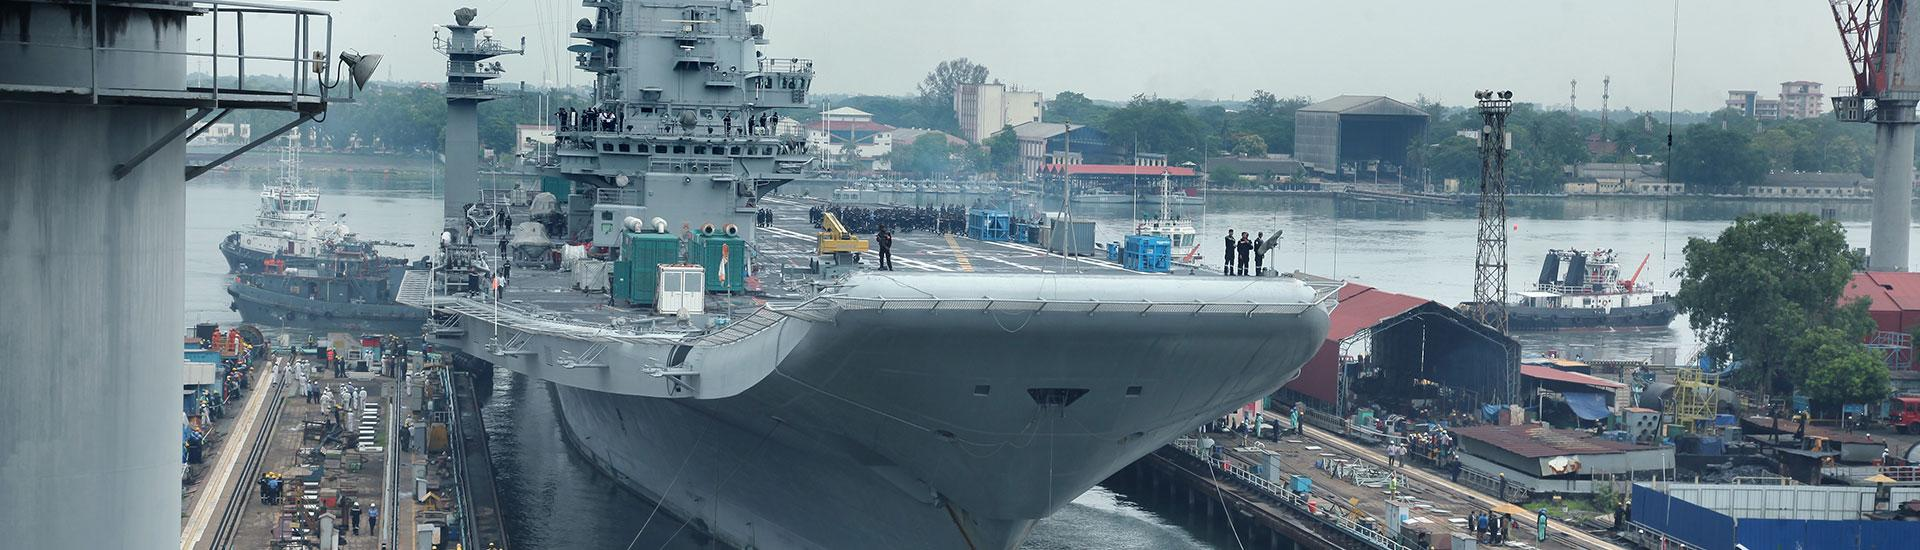 INS Vikramaditya docked in CSL for repair